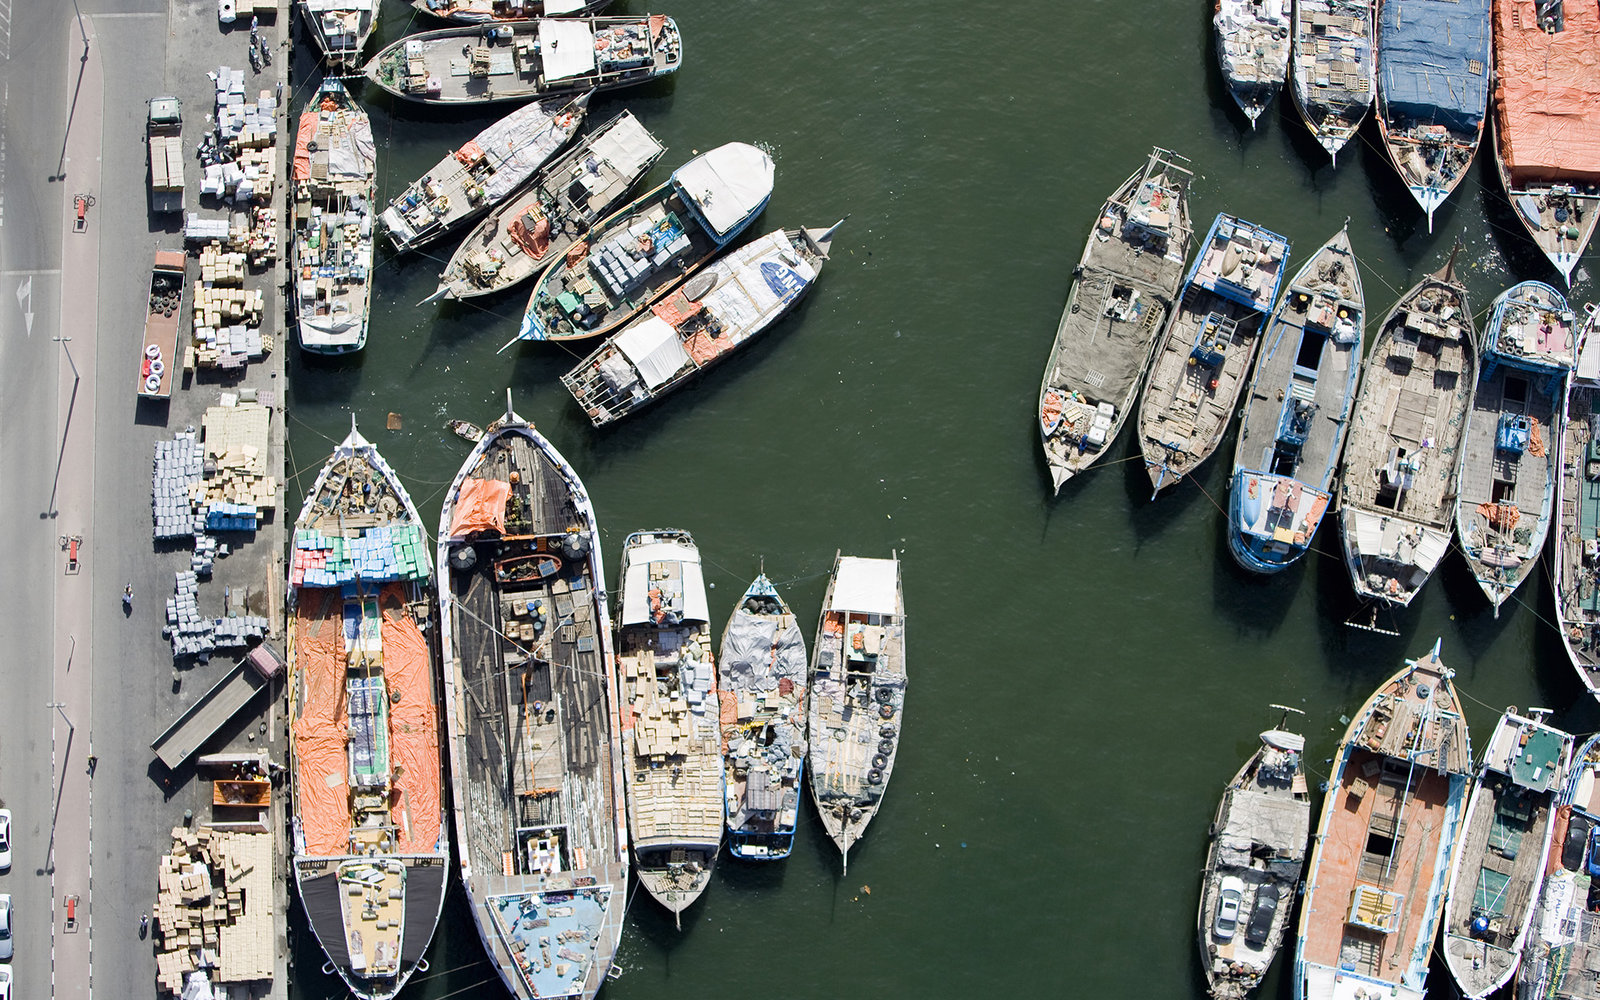 Aerial view over moored boats in a marina, Dubai